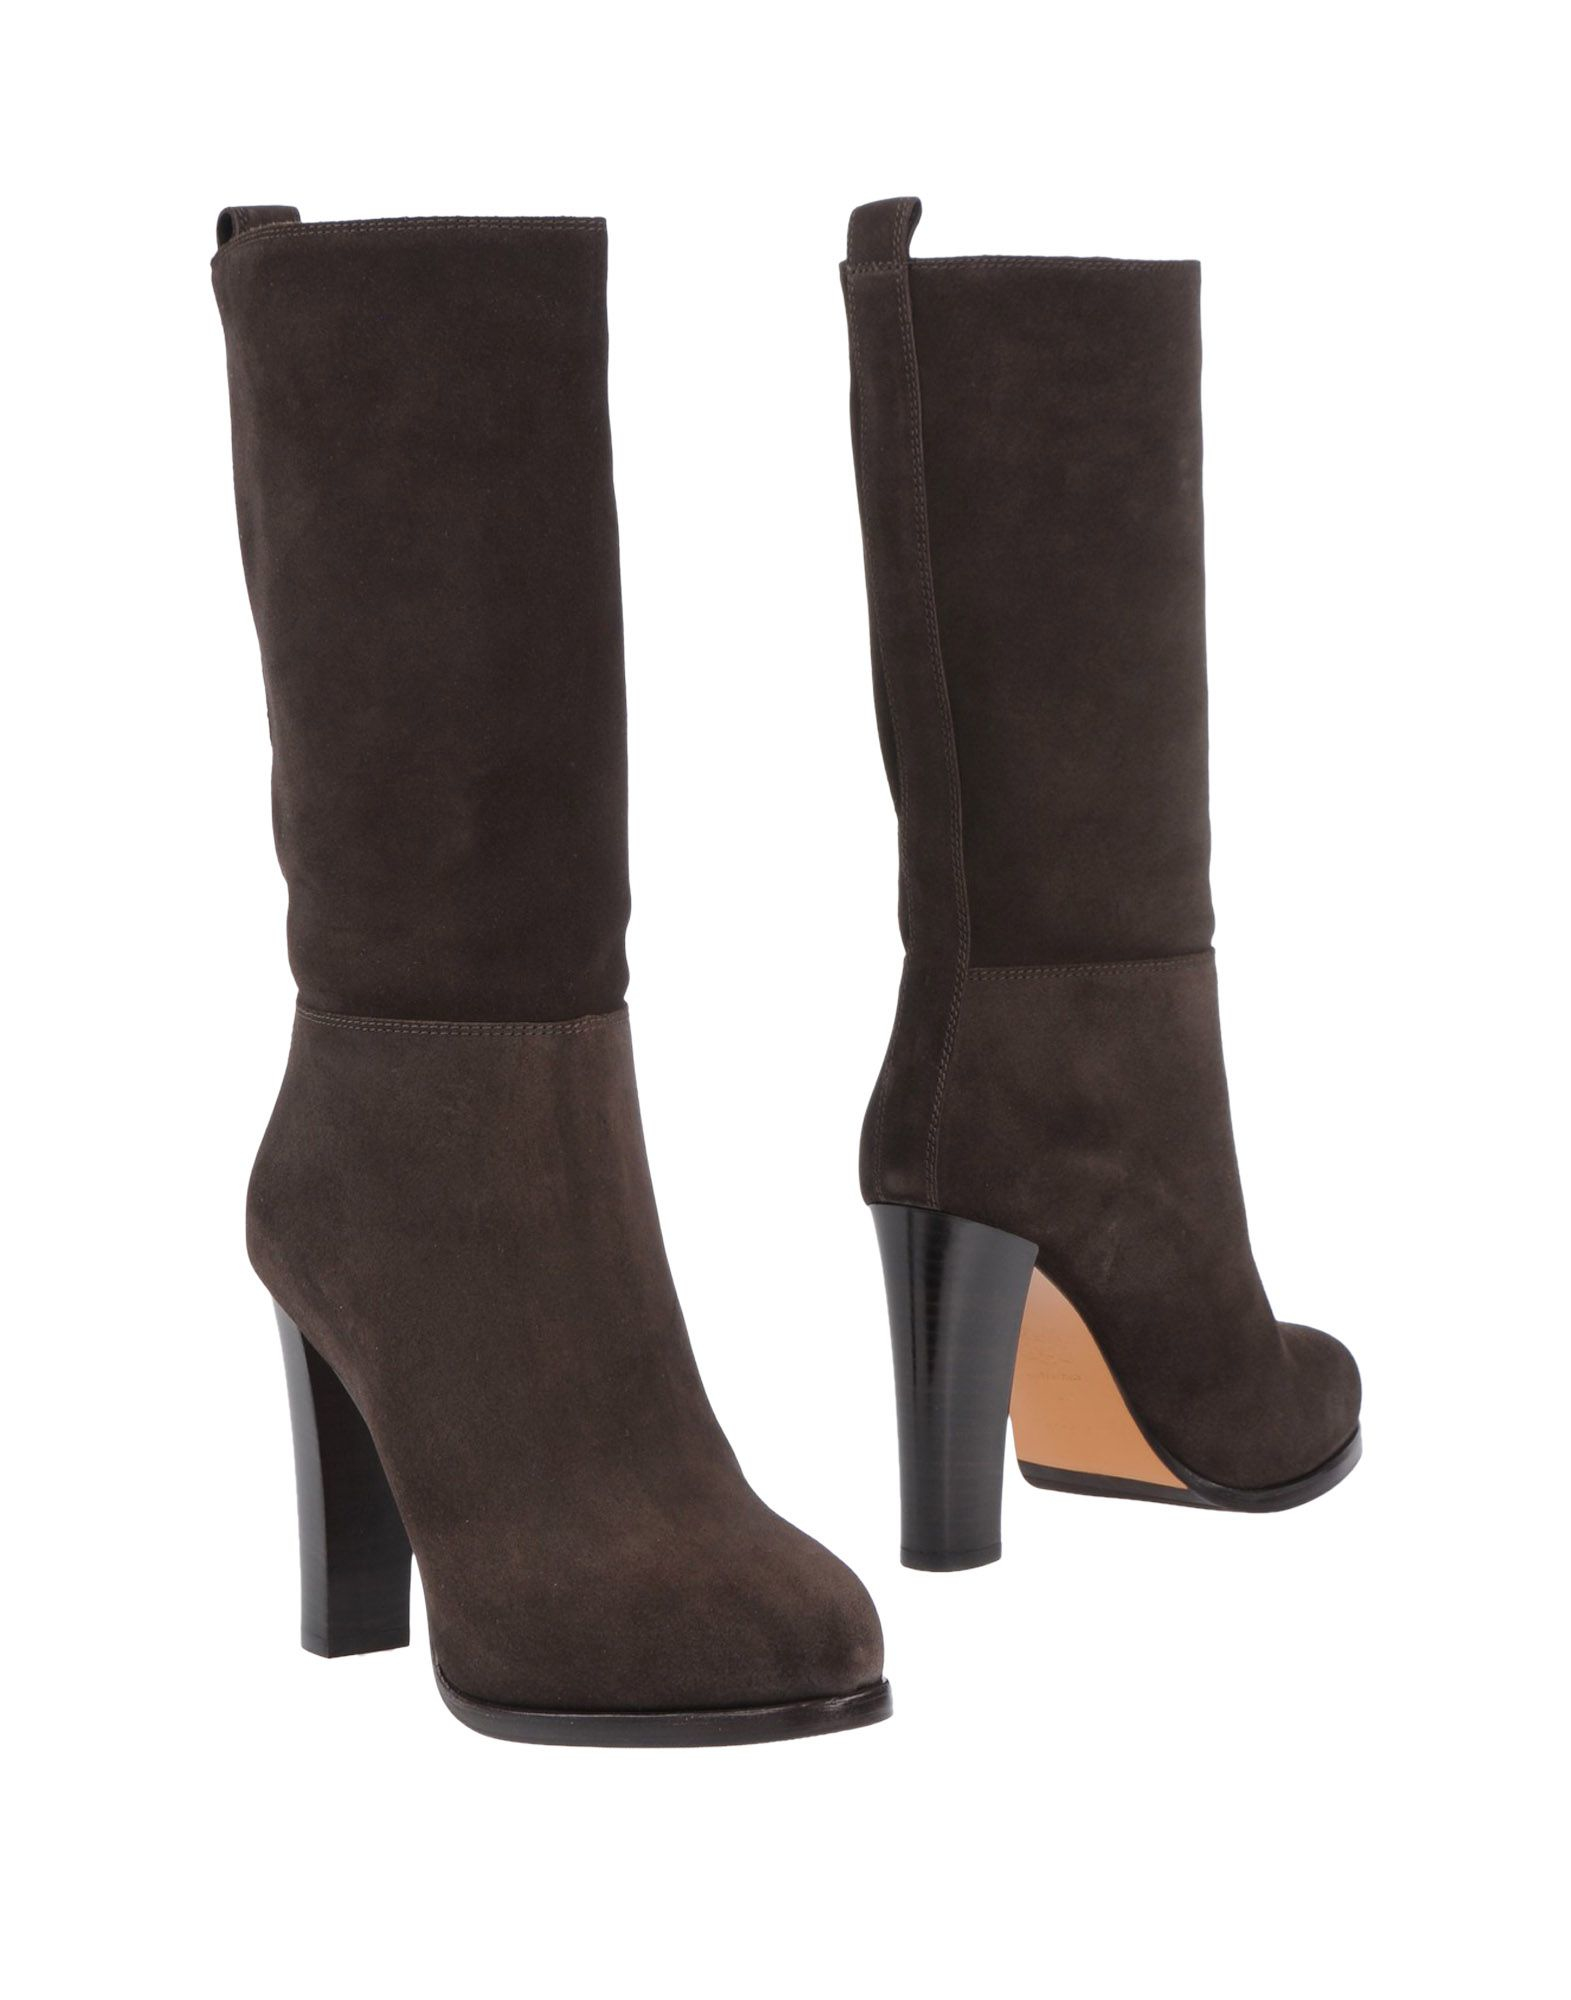 bruno magli boots in brown lyst